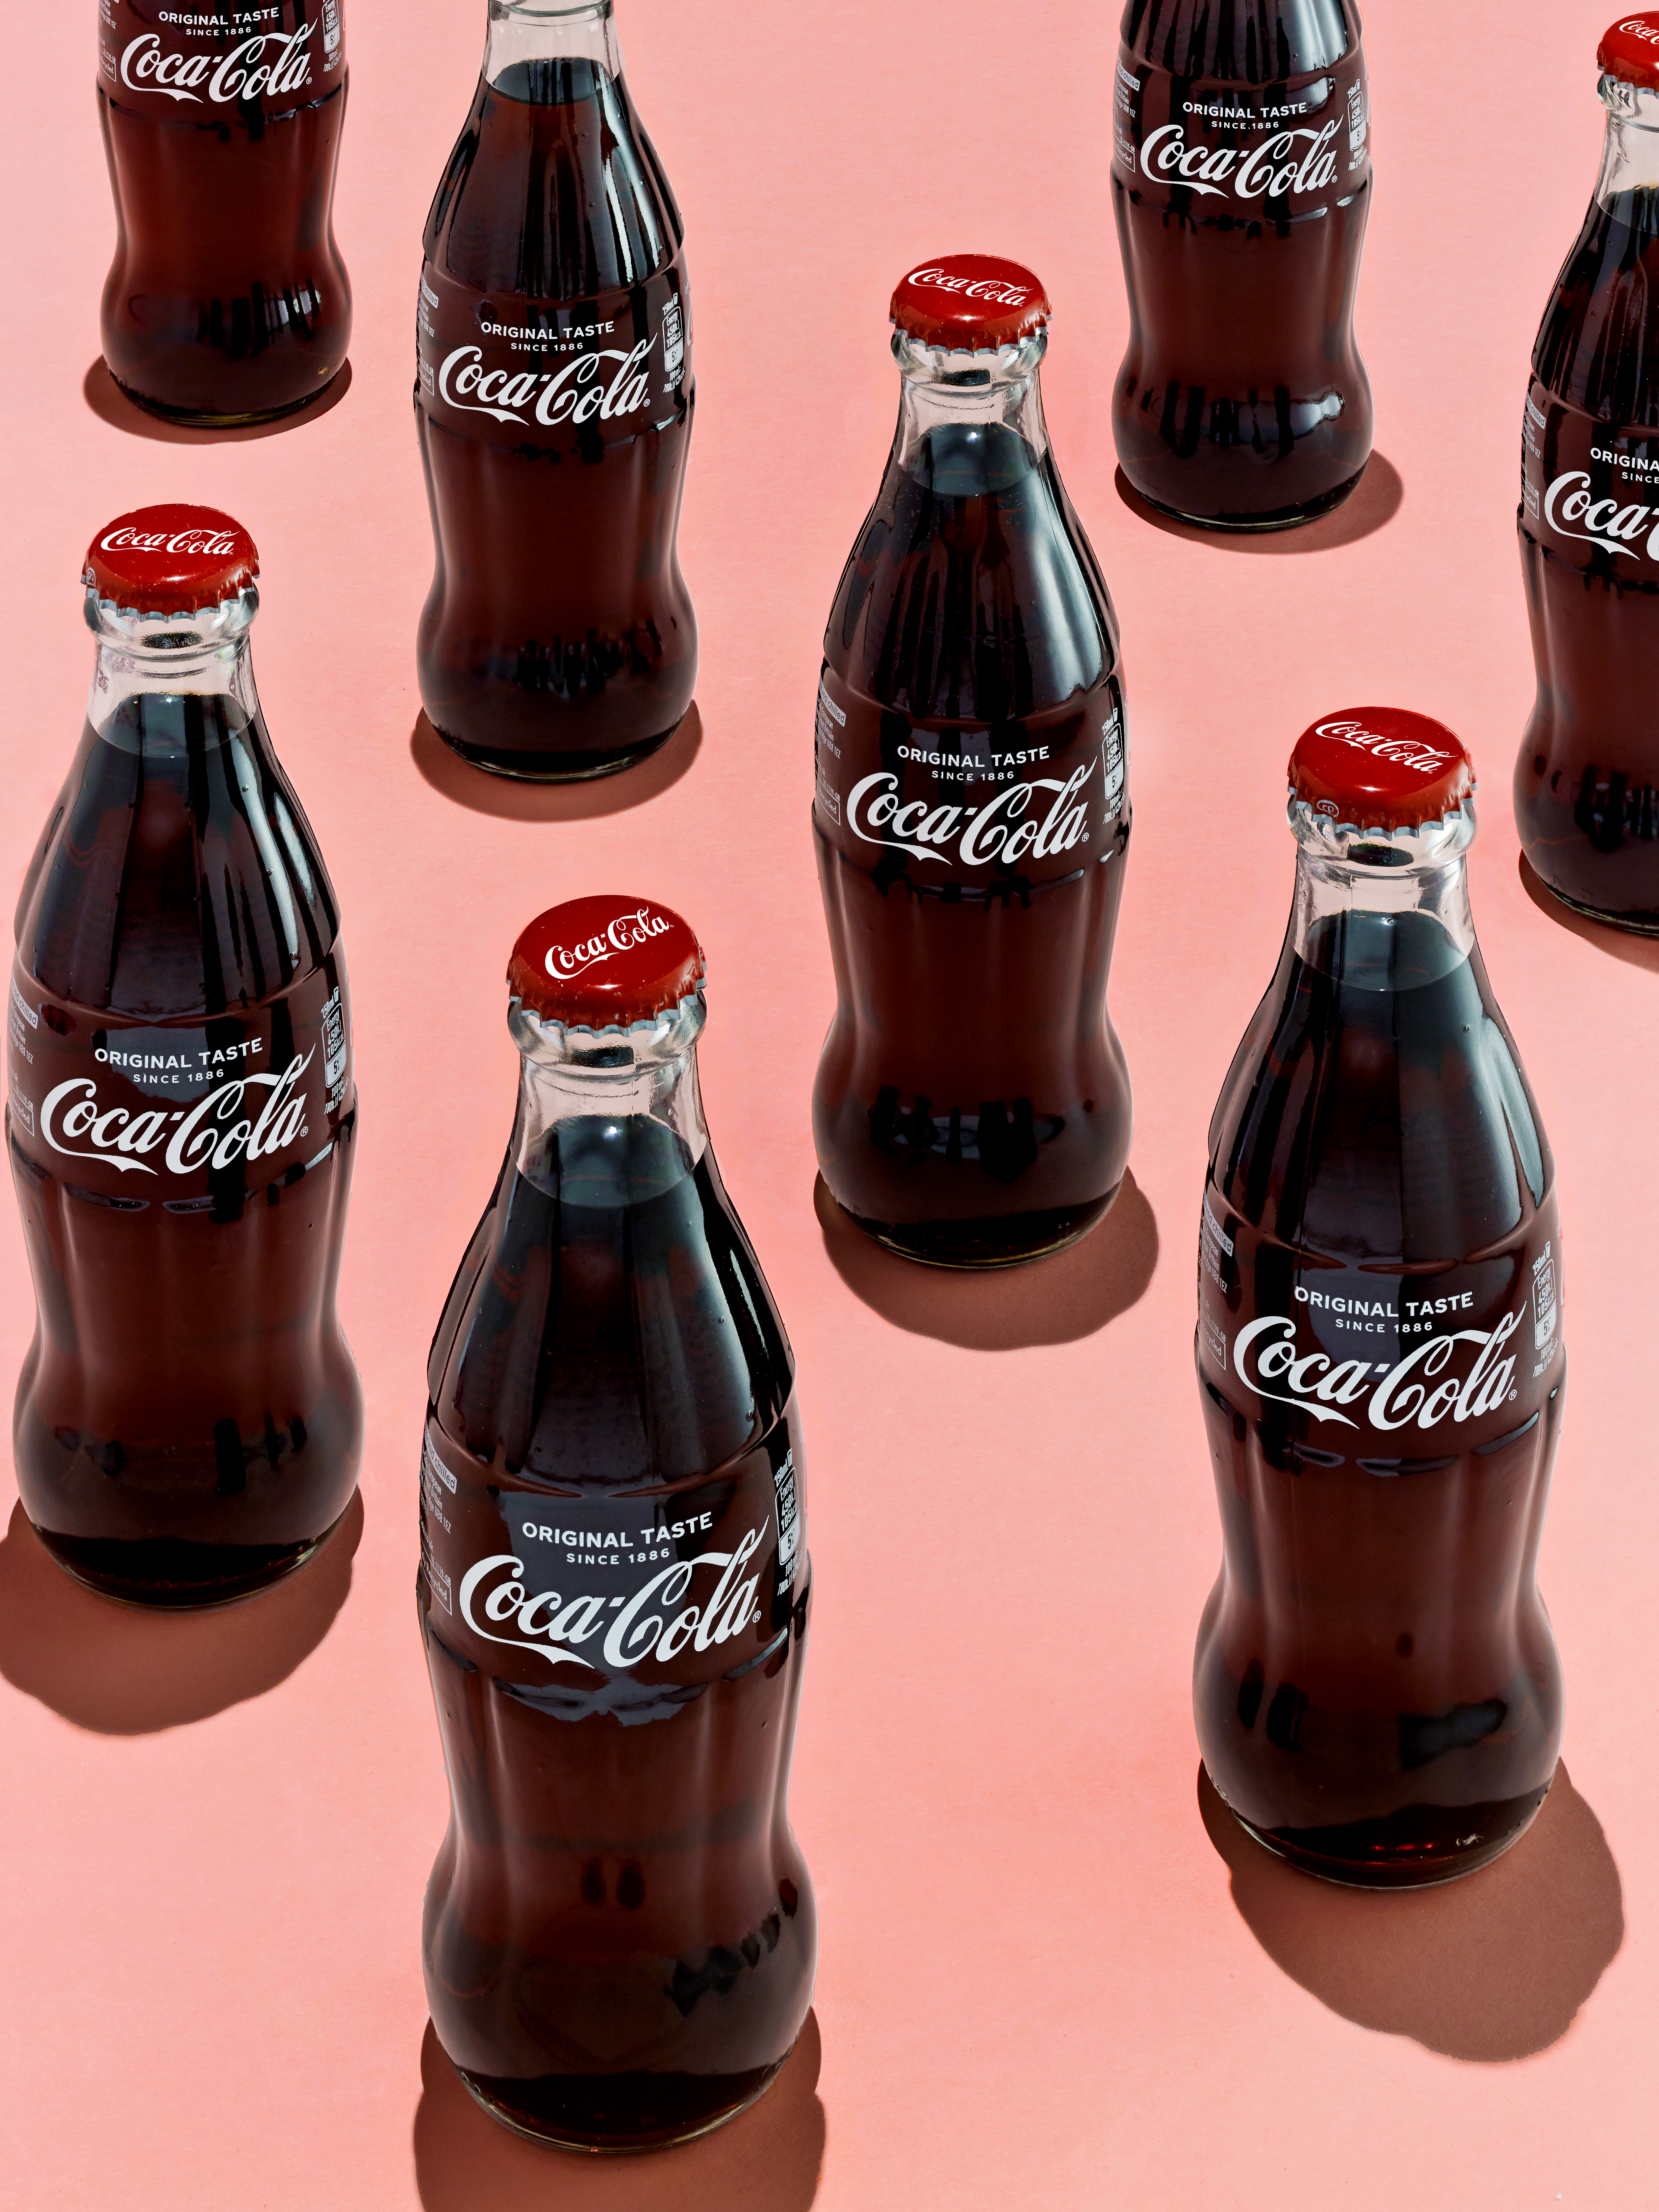 A close up of multiple glass Coca-Cola bottles showing their tactile design and iconic shape